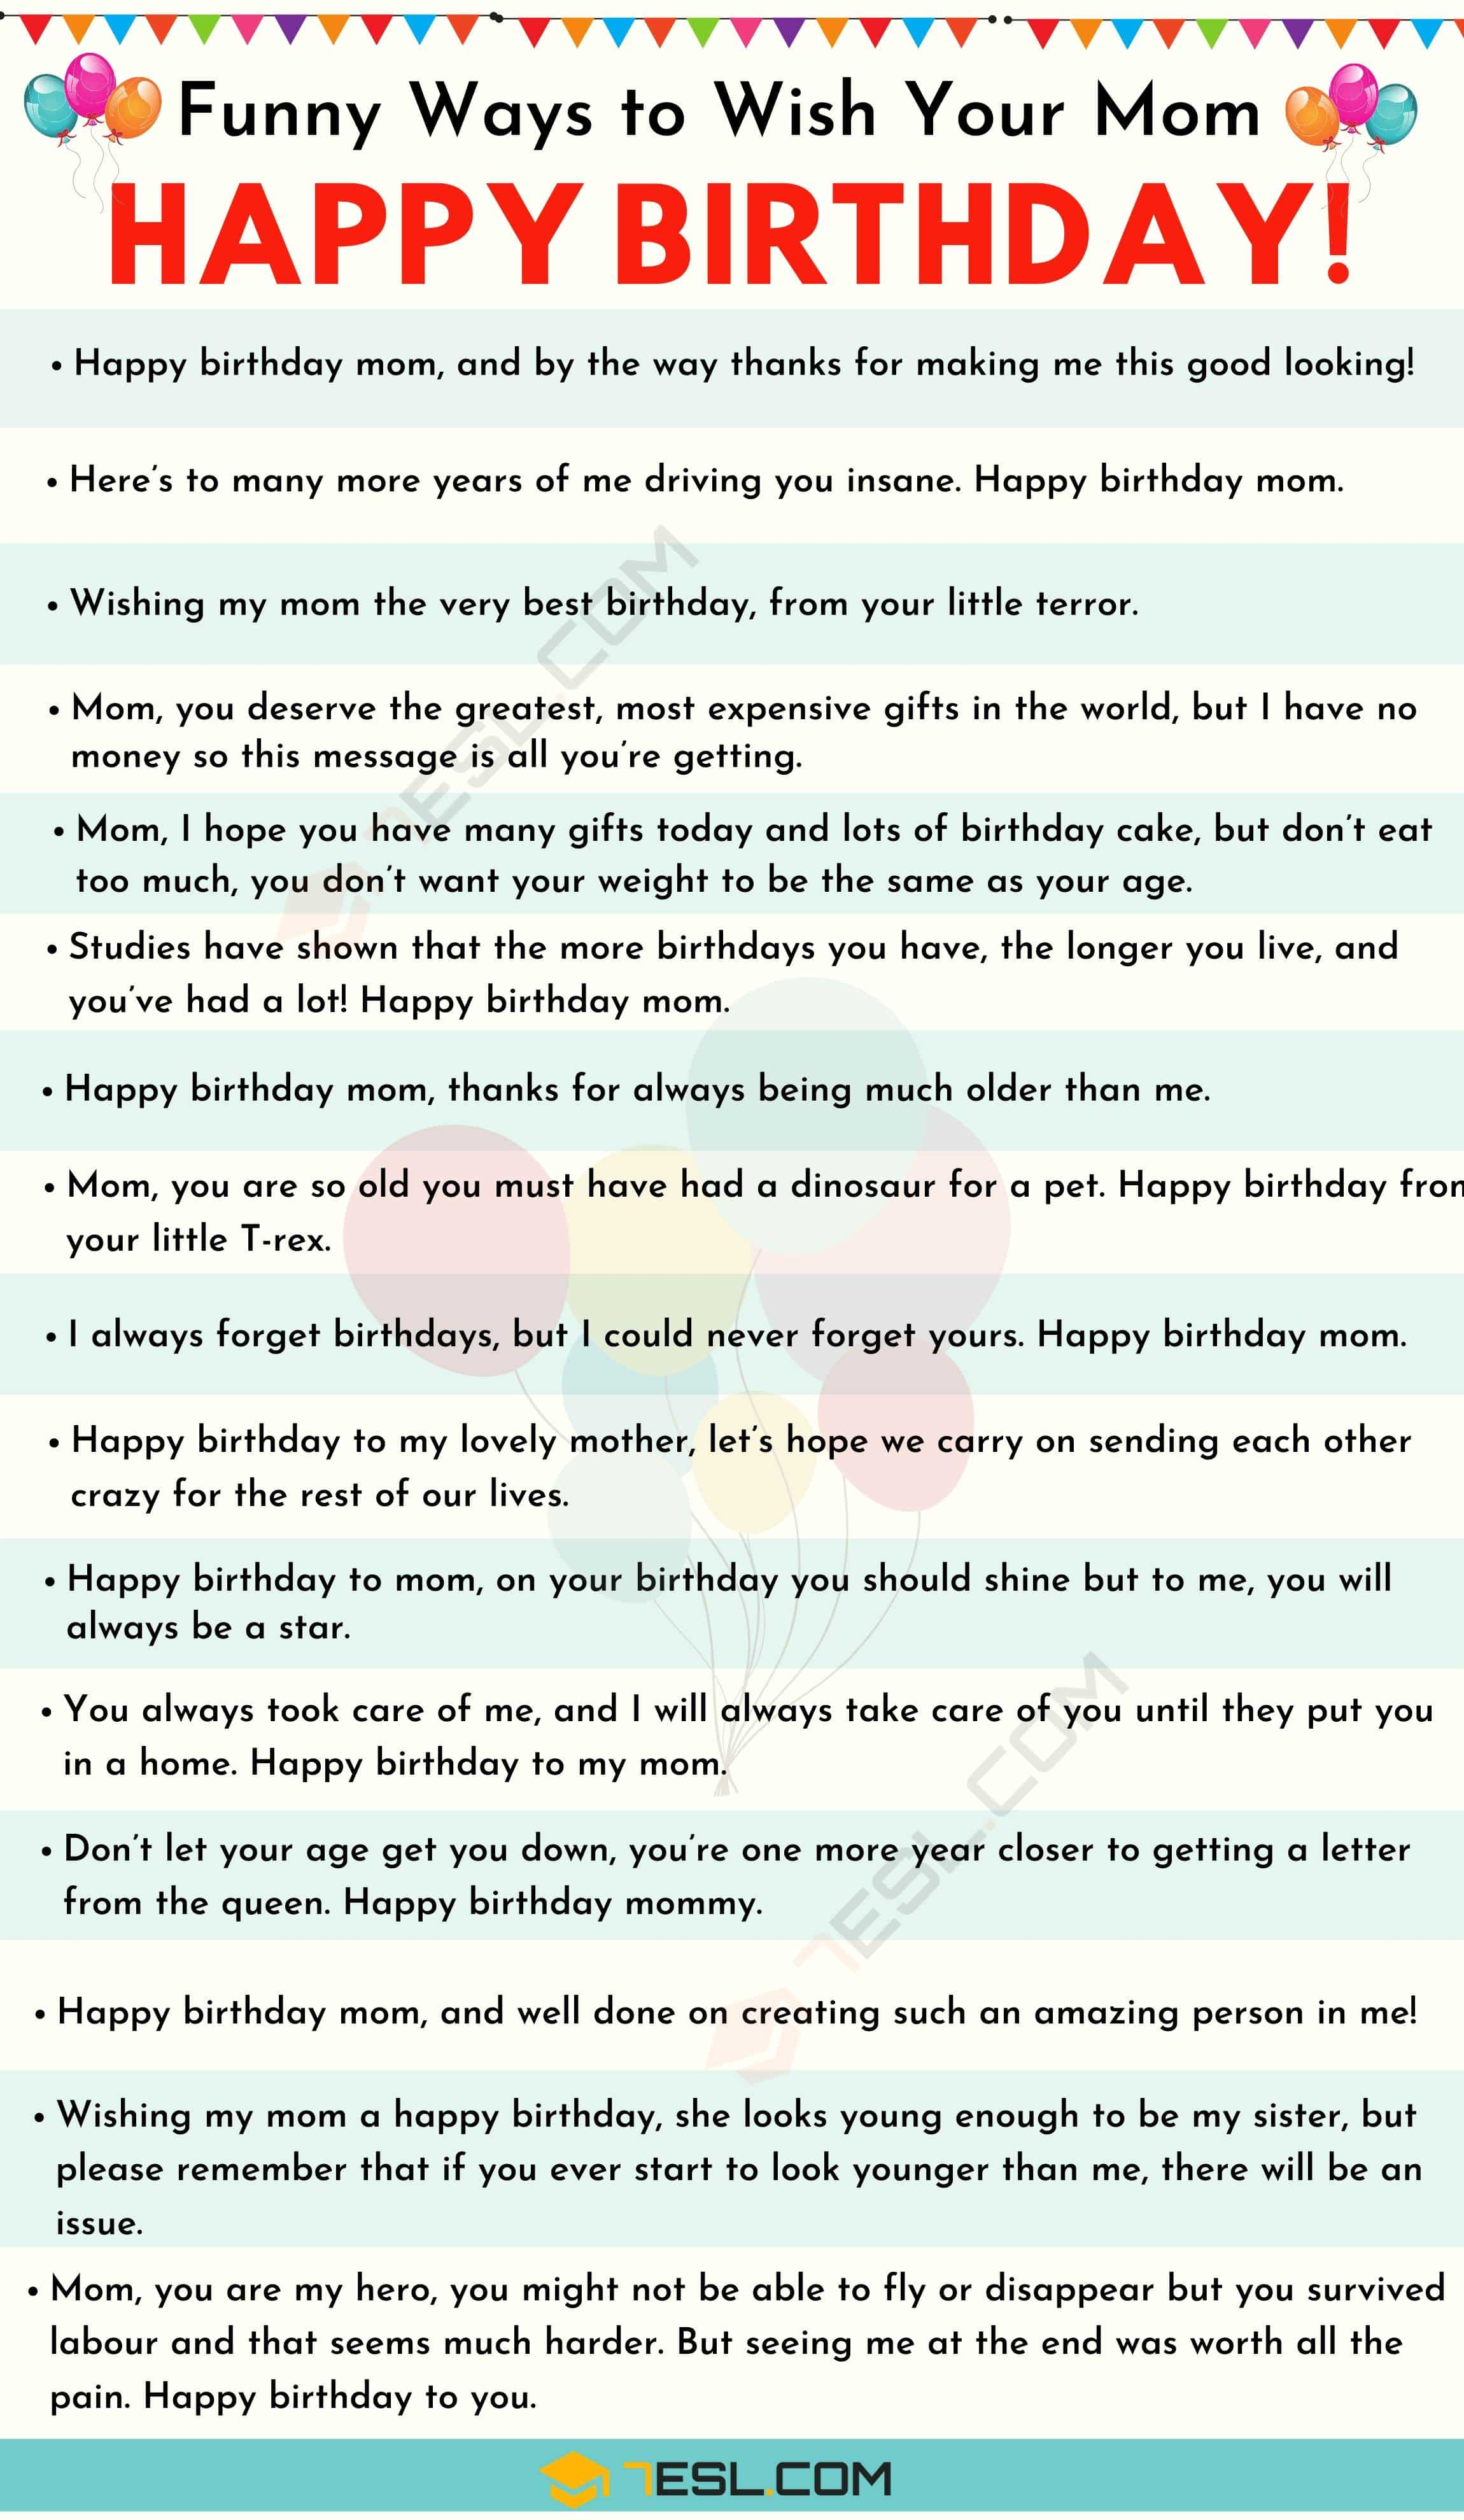 Funny Letter To Best Friend On Her Birthday : funny, letter, friend, birthday, Happy, Birthday, Sweet, Funny, Wishes